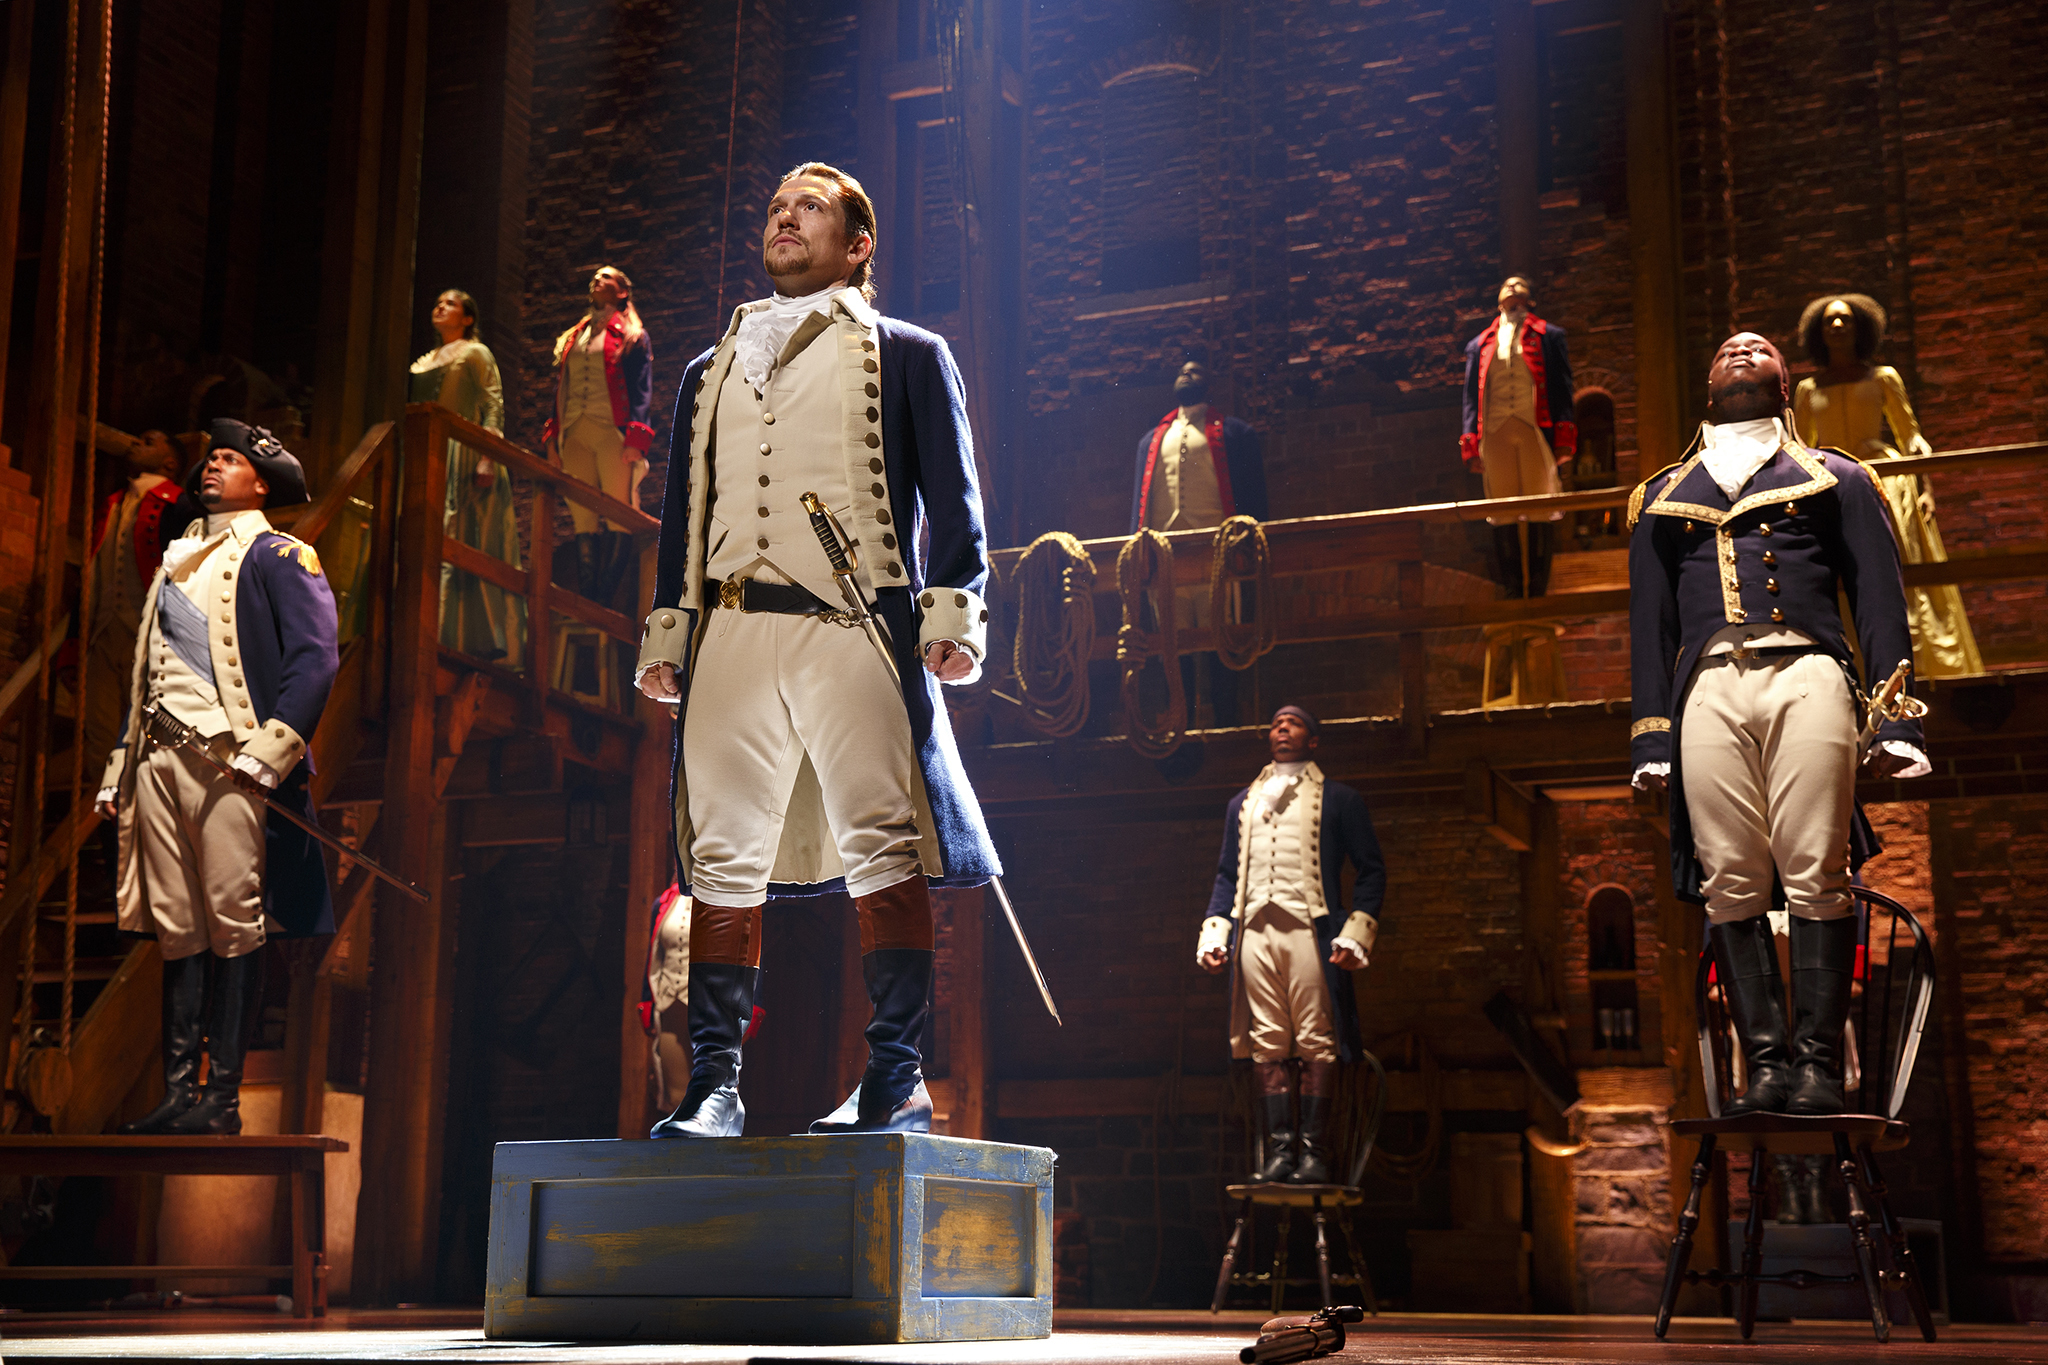 Everything you need to know about seeing Hamilton in Chicago